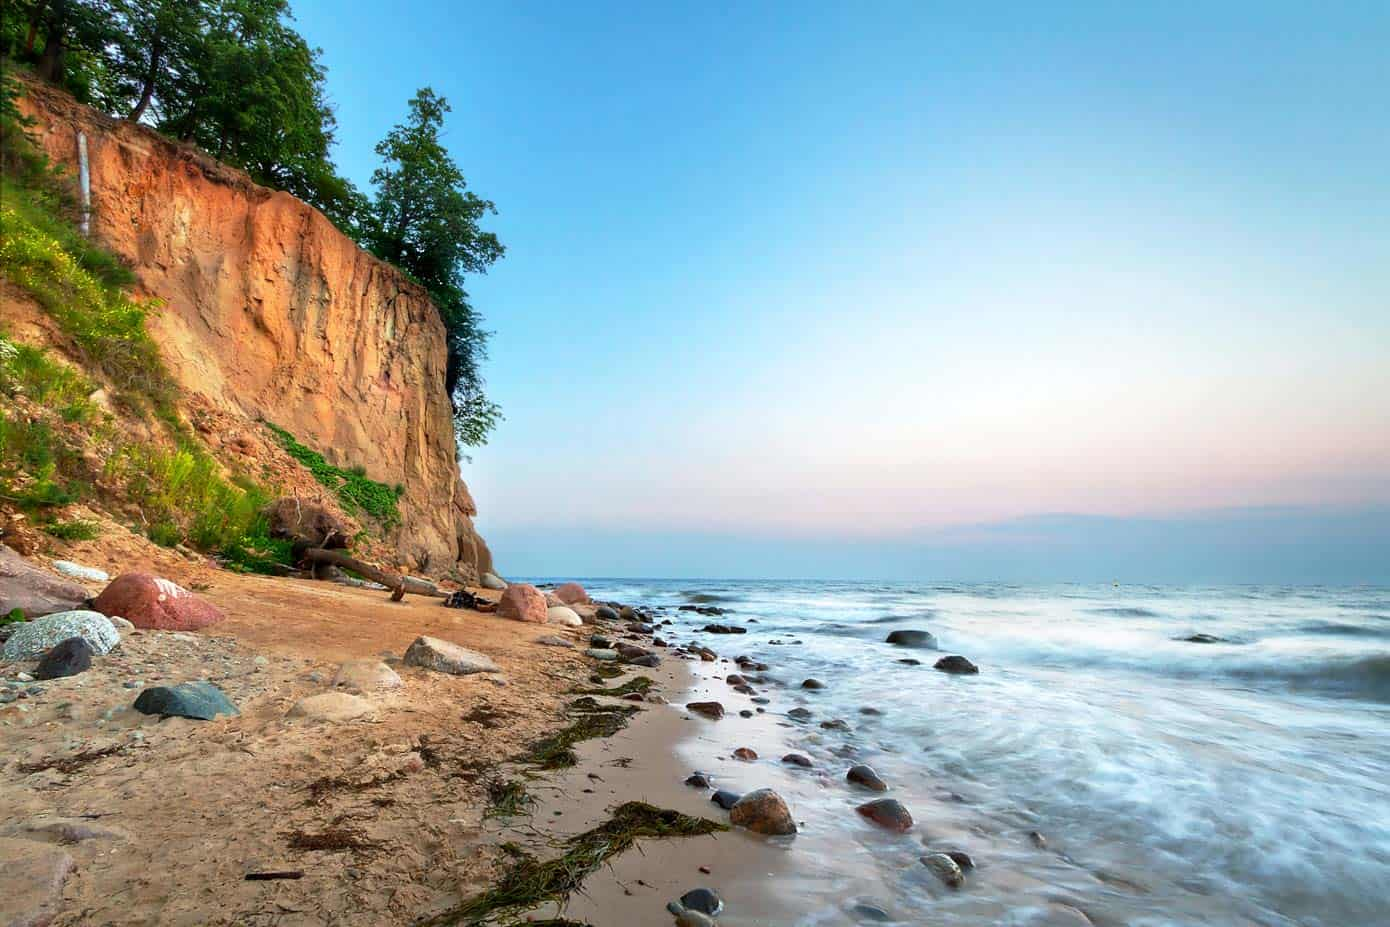 Massive cliffs leading into the ocean in Poland, Europe.